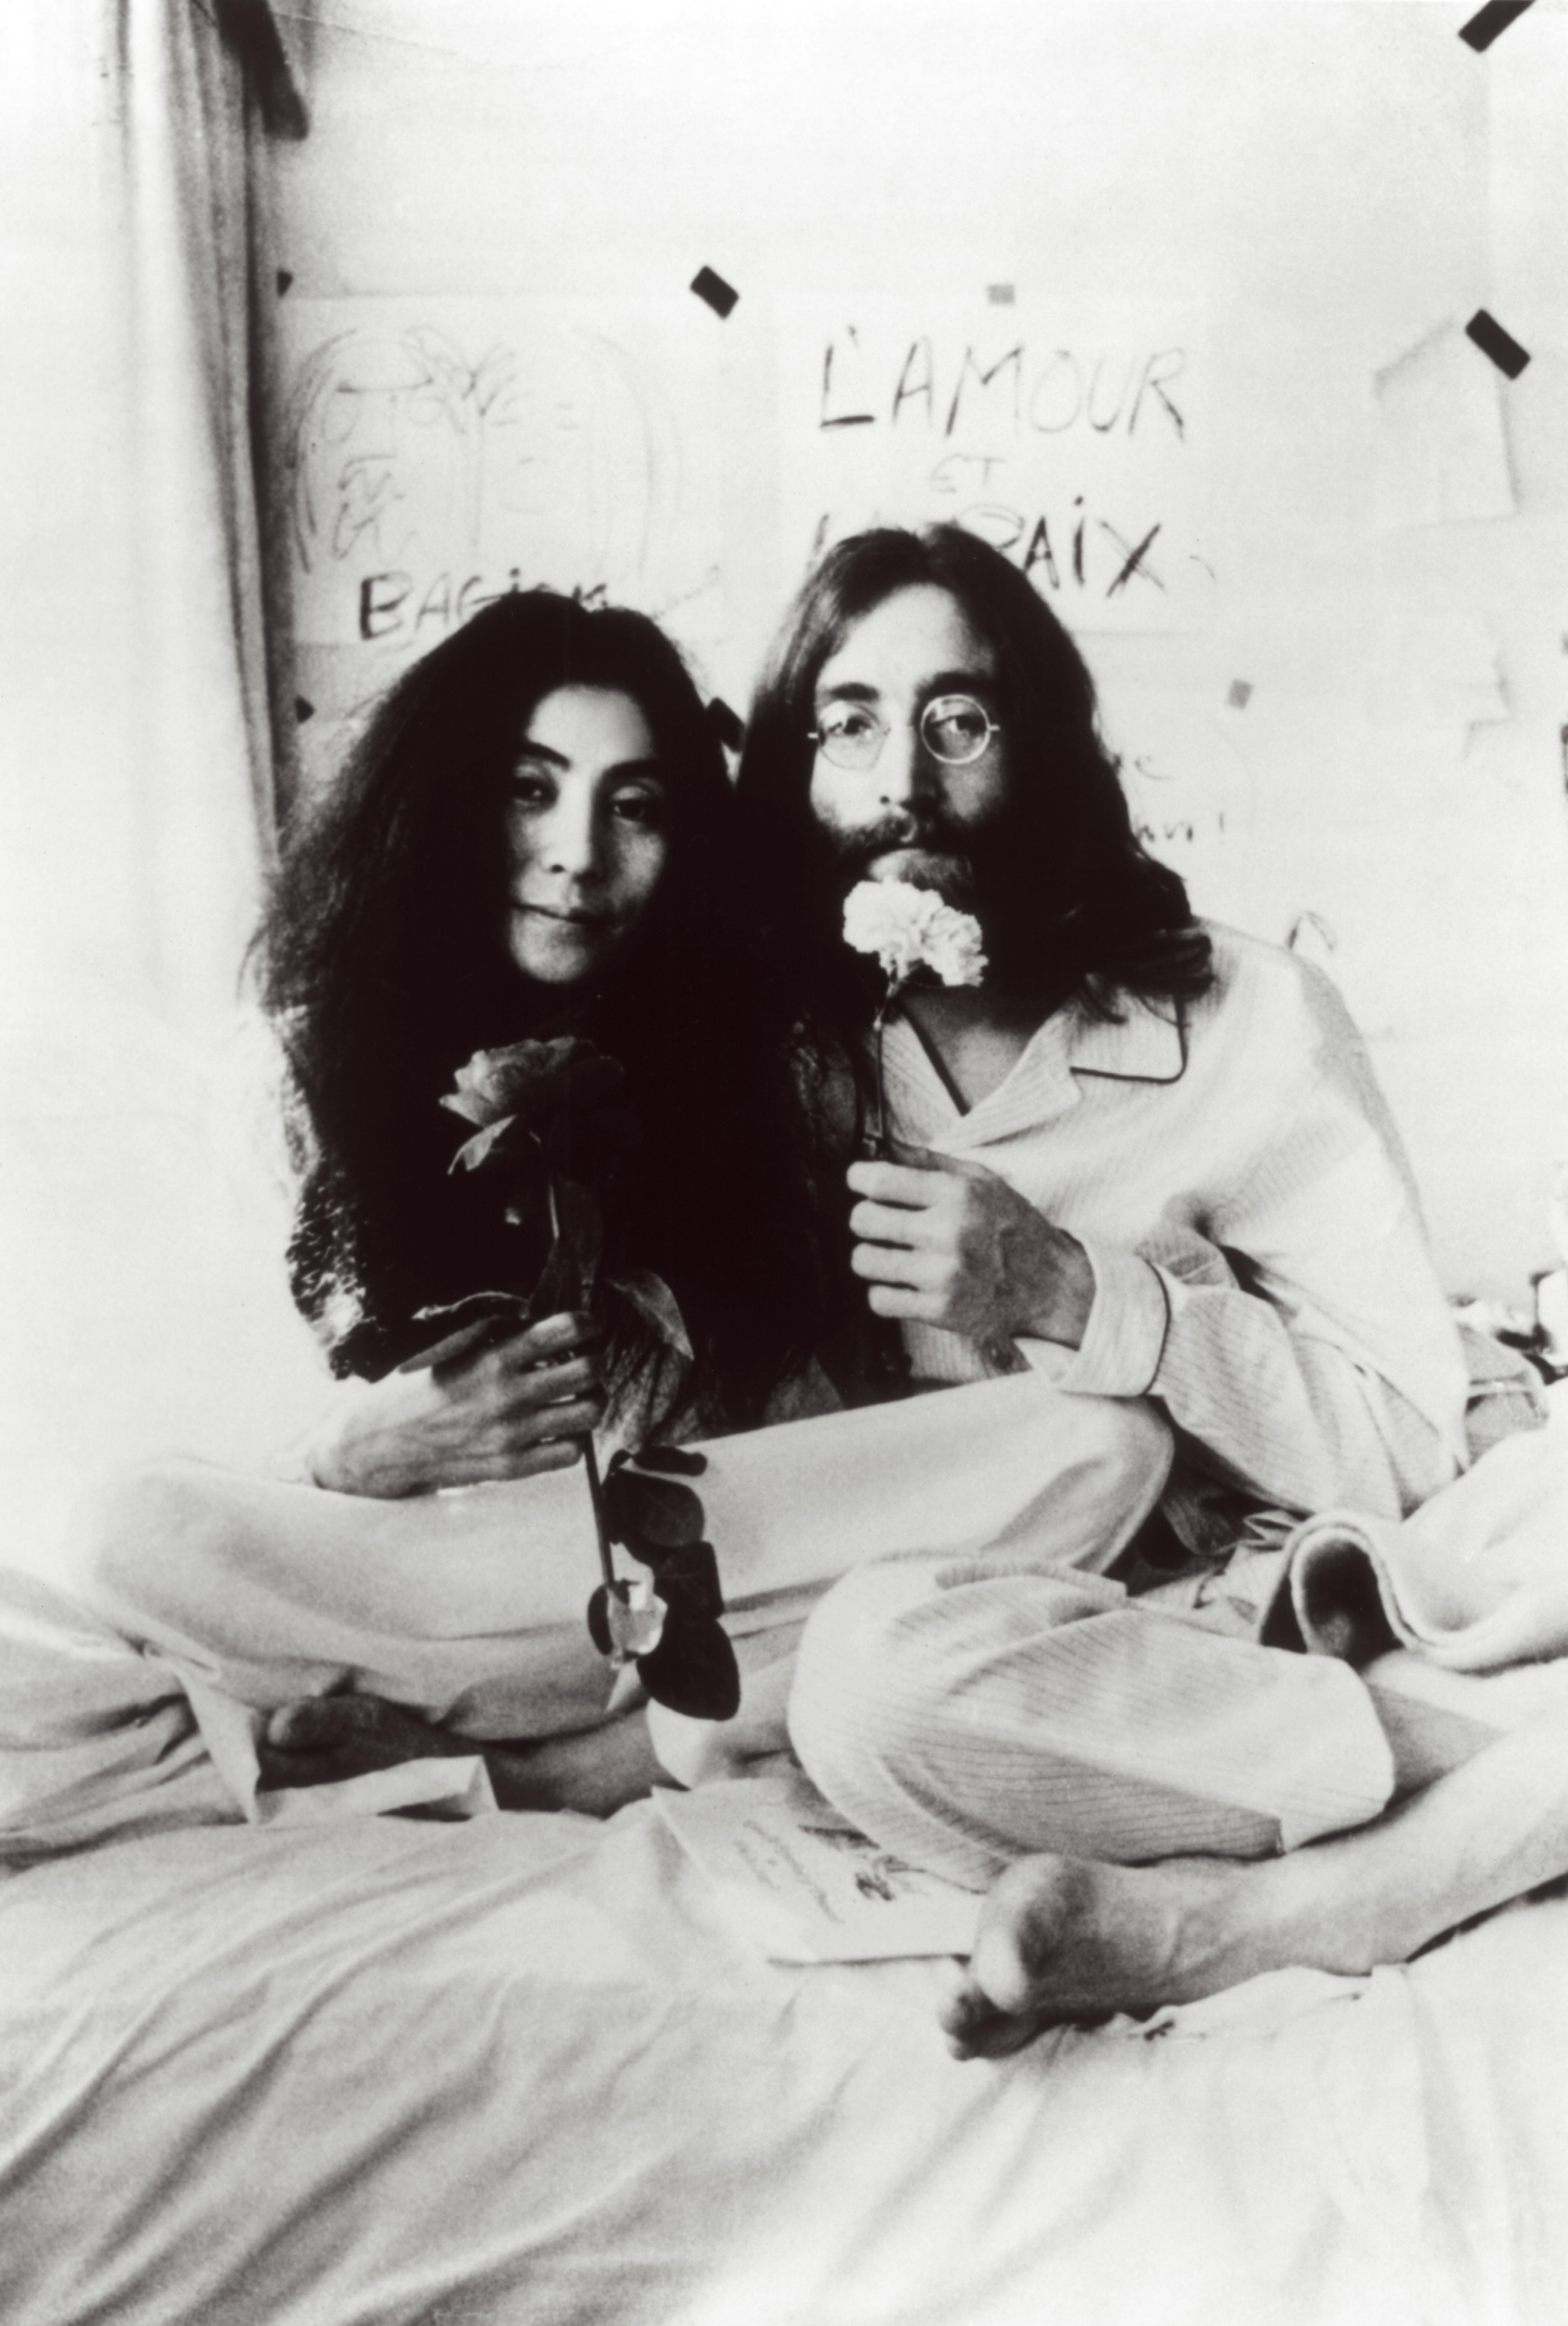 John Lennon And Yoko Ono S 1969 Bed In For Peace Was An Anti War Protest And Honeymoon The Washington Post